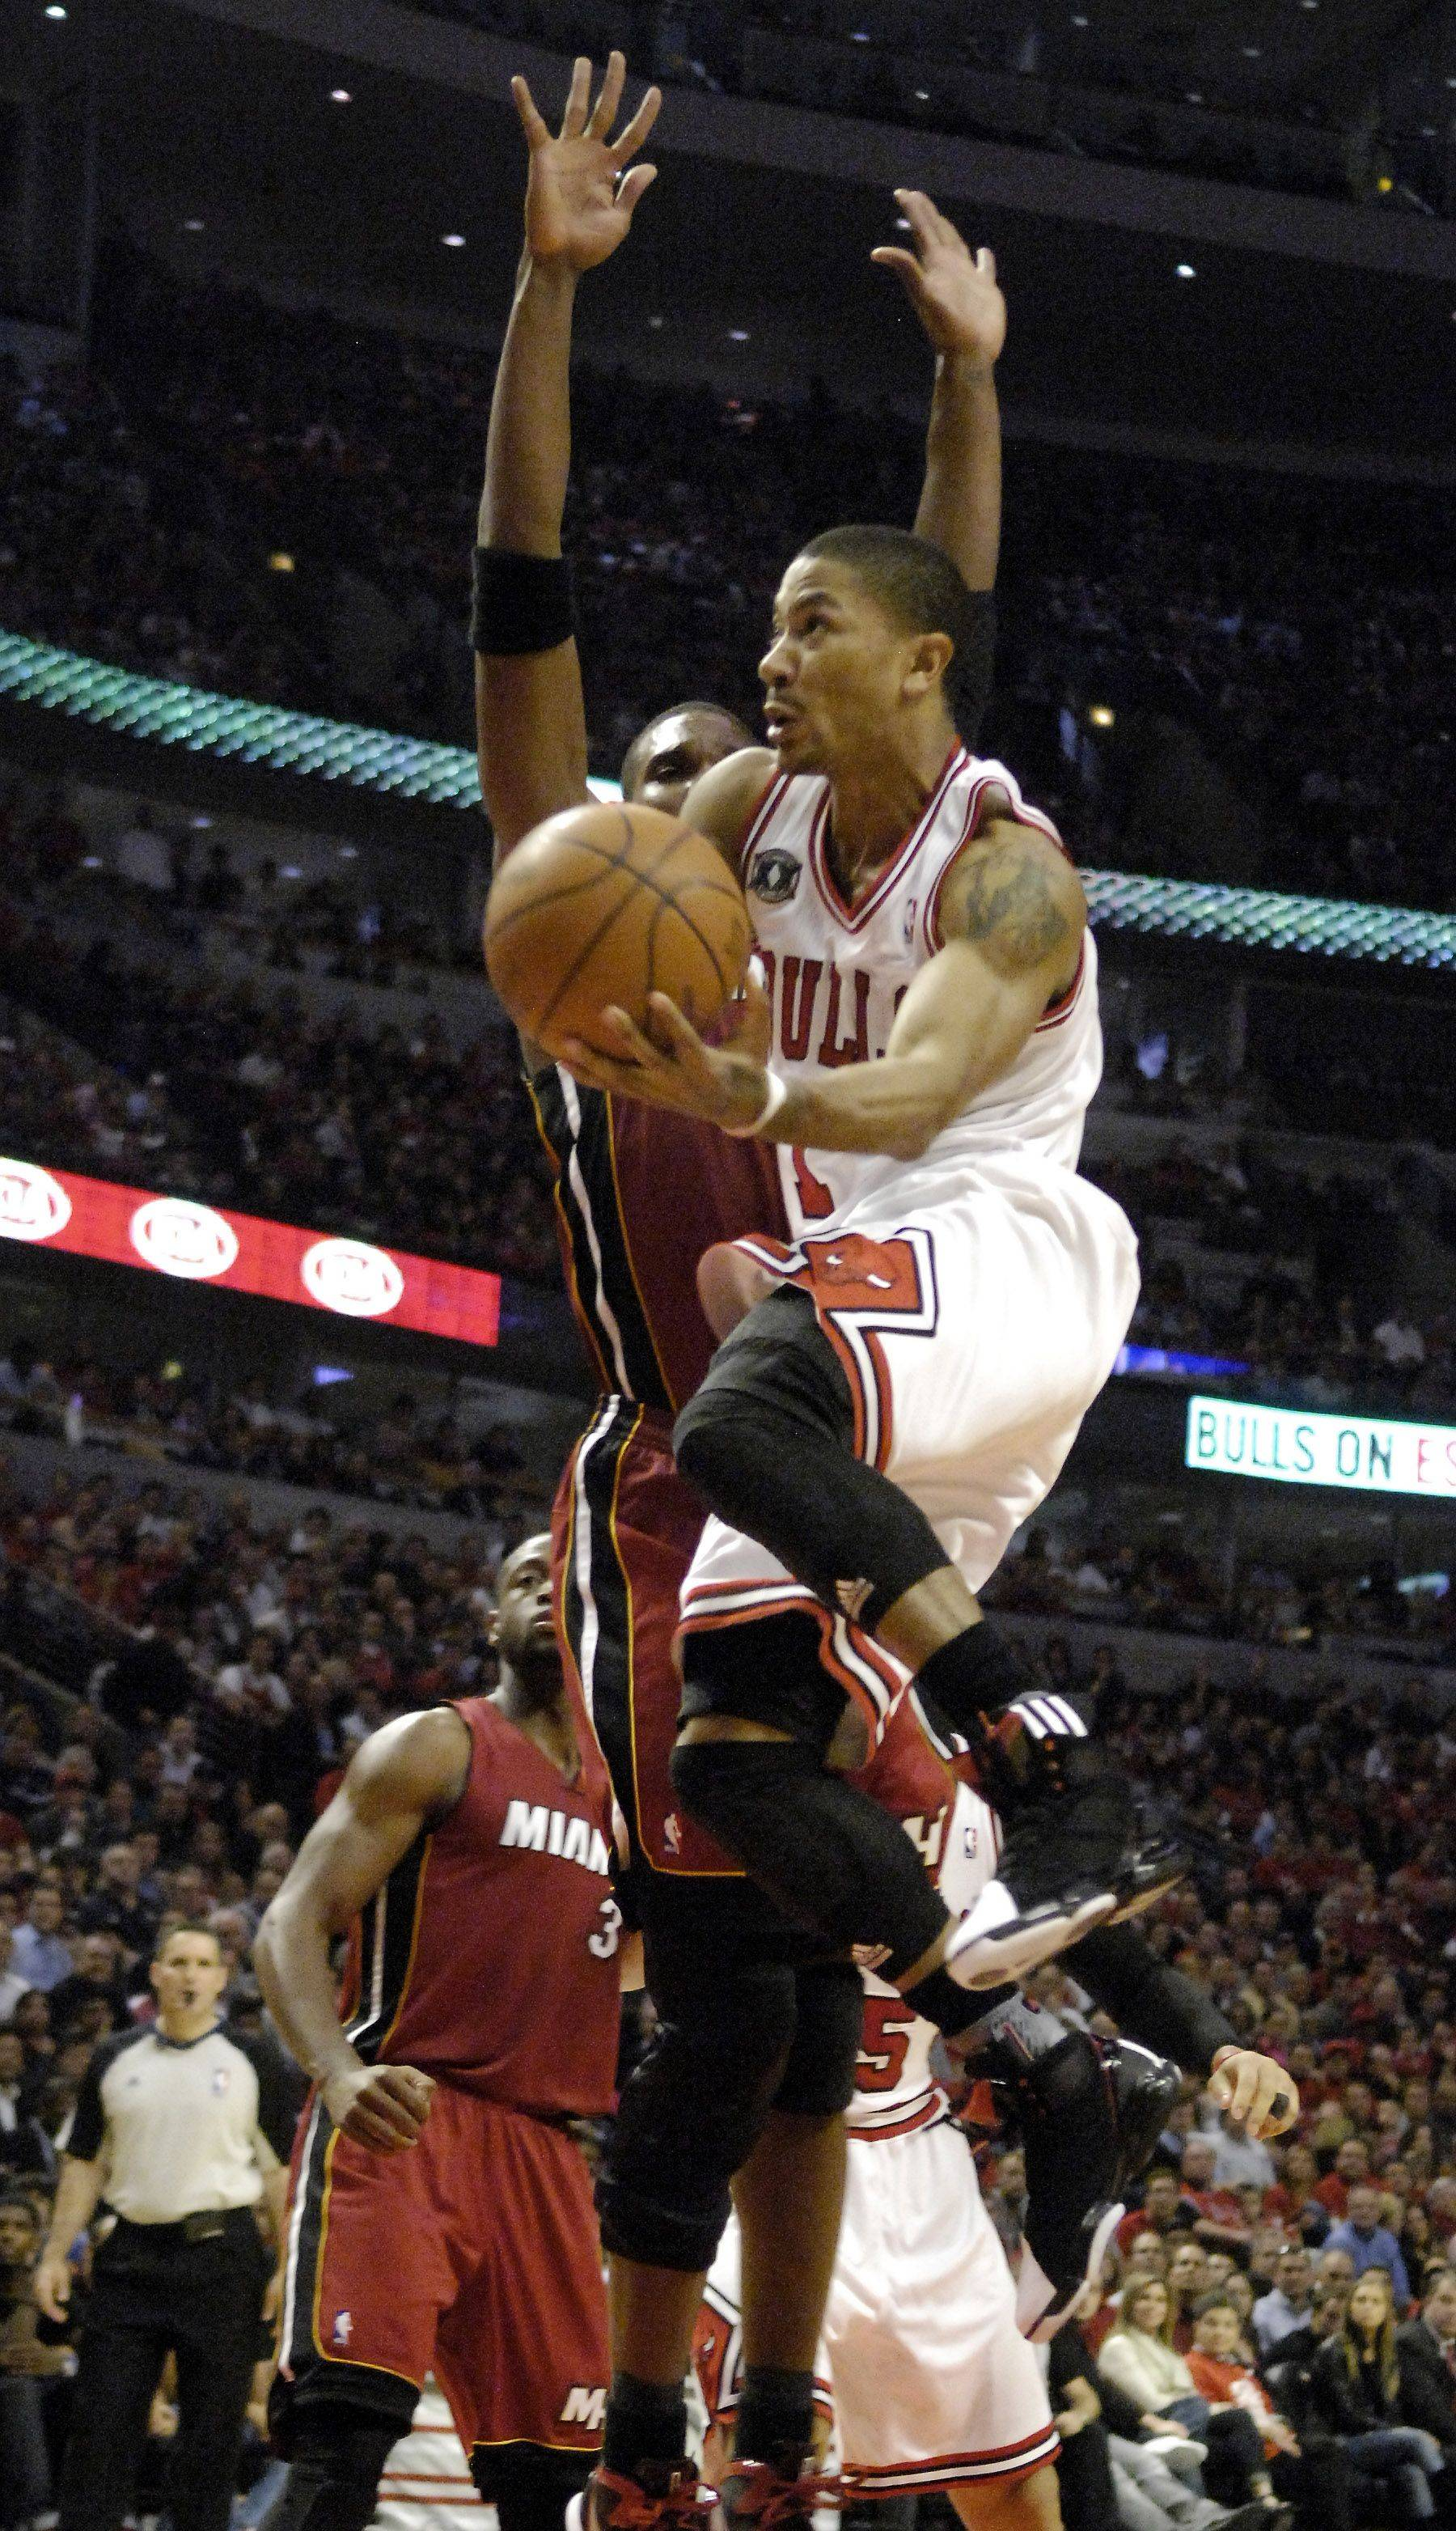 Derrick Rose will be looking to more aggressively push the tempo for the Bulls in Game 3 at Miami.